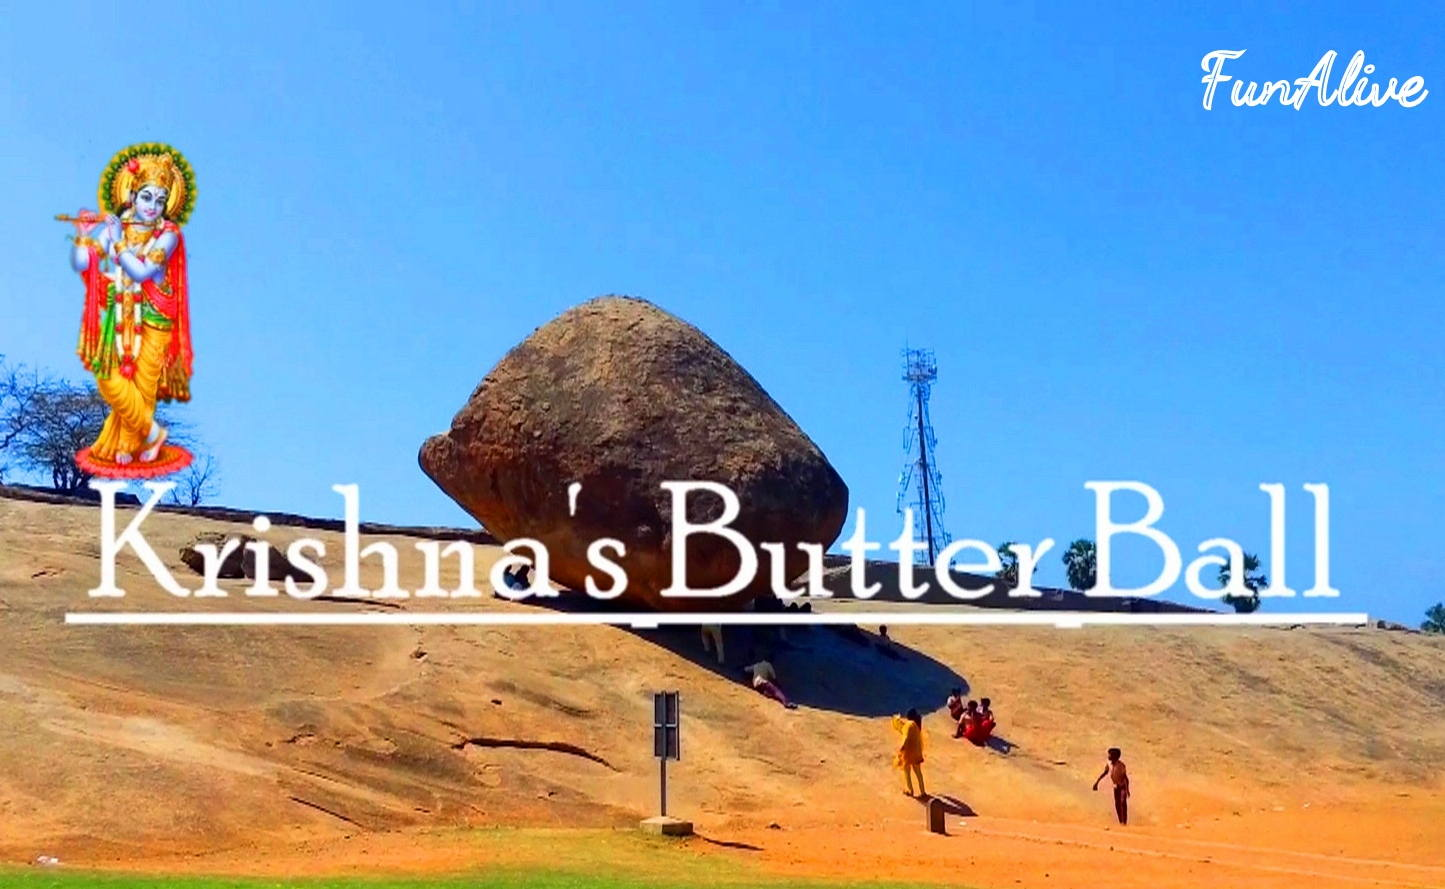 Krishna's Butter Ball - The mysterious balancing rock of Mahabalipuram